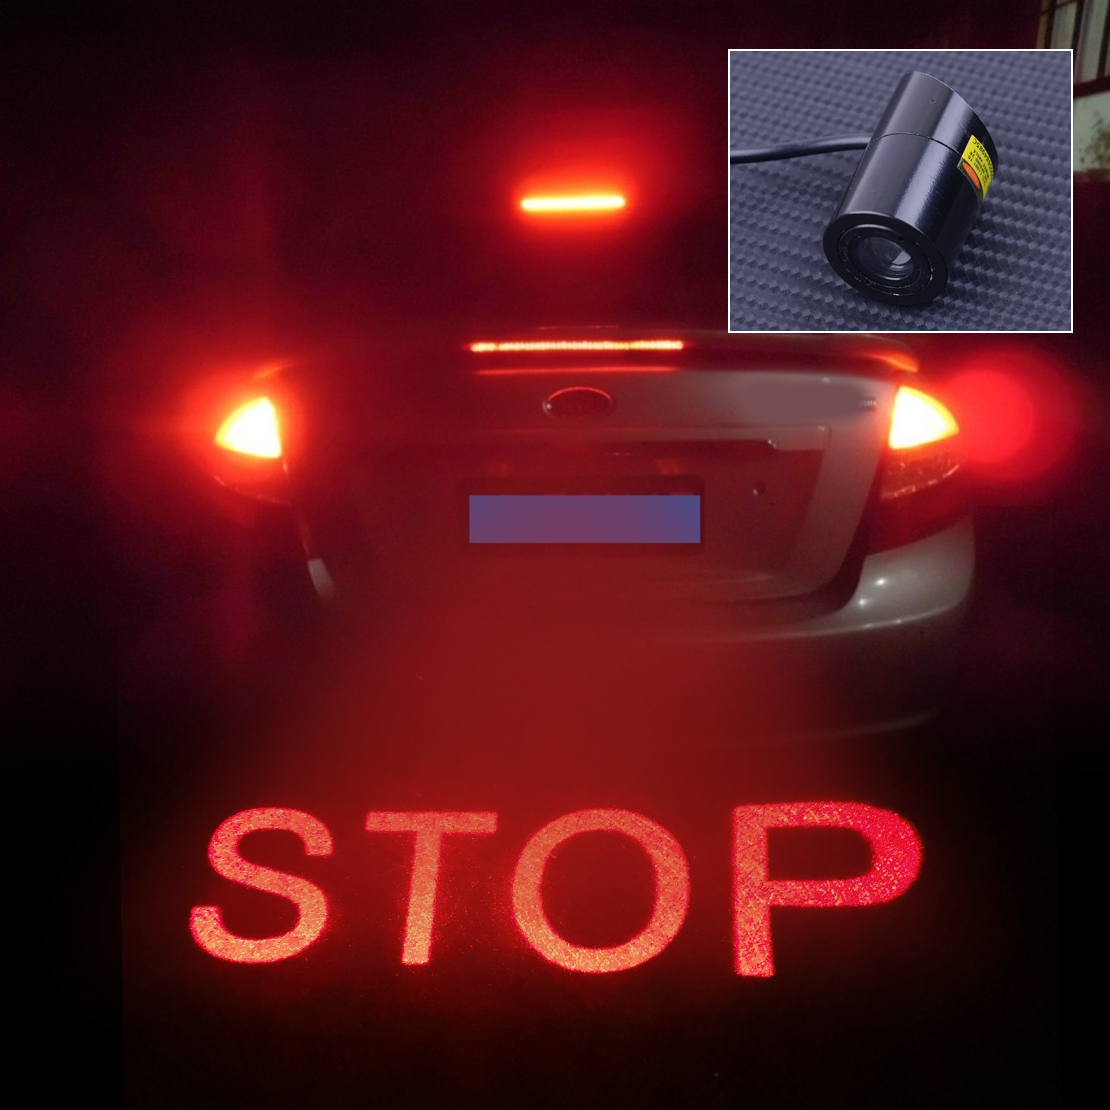 DWCX Car 8V-36V STOP LED Light Tail Warning Brake Lamp Caution Projector Anti-Collision Accessories